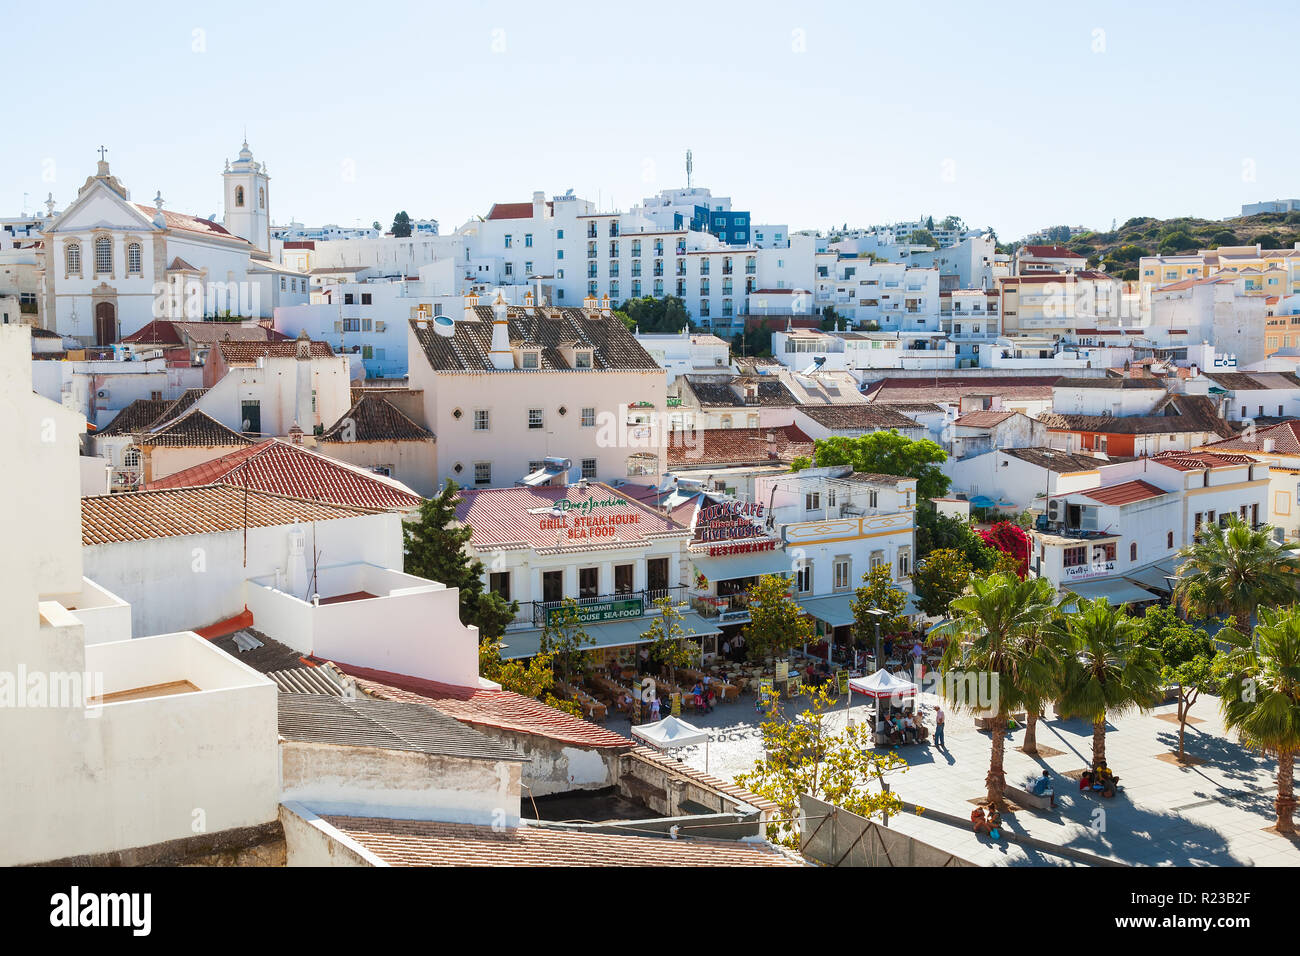 Albufeira, Portugal - May 2012: View of roof tops and main square, Albufeira, Portugal Stock Photo